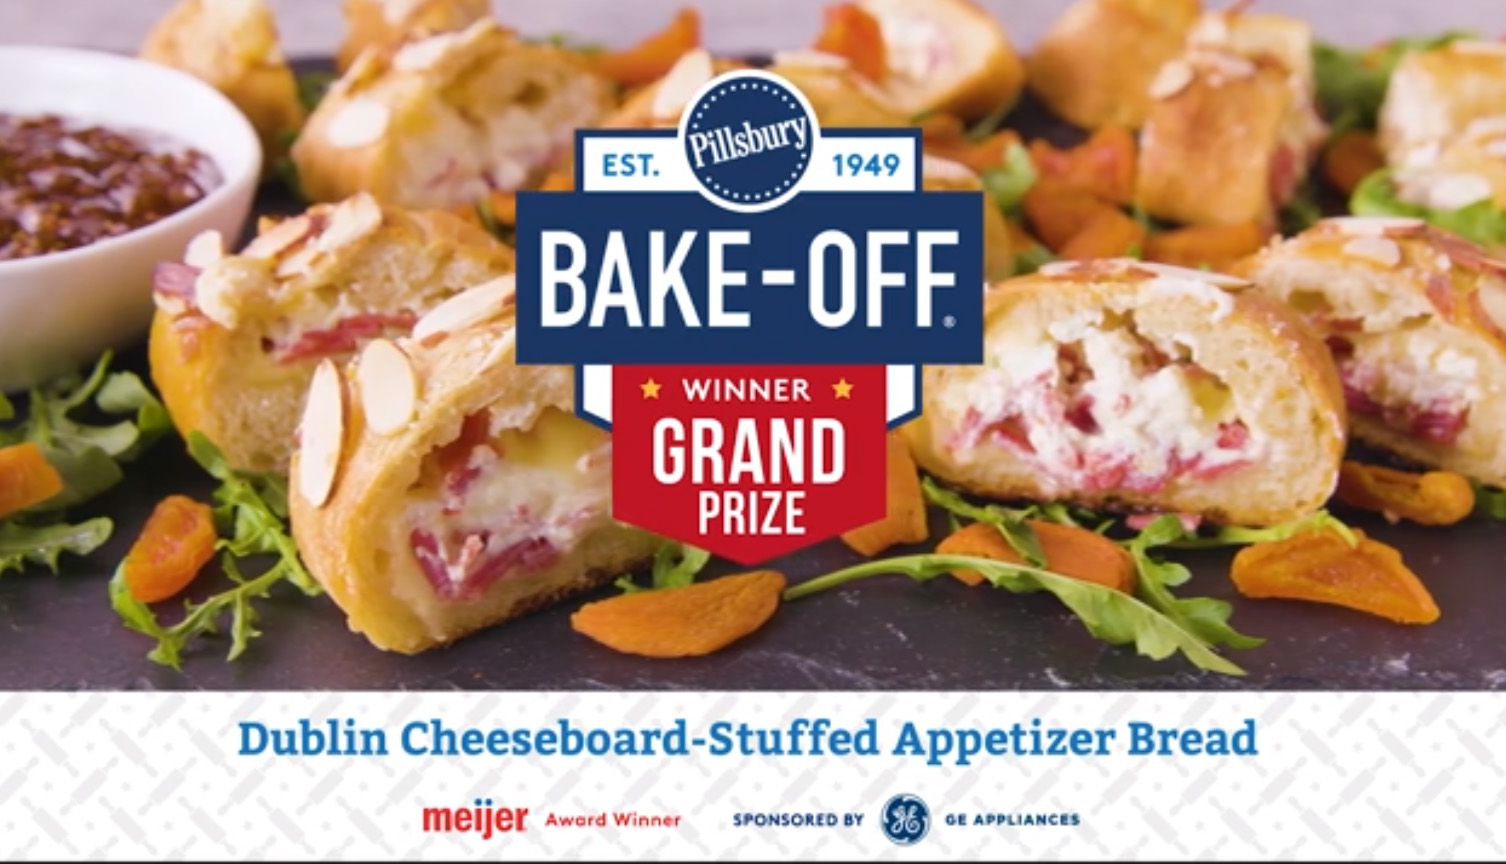 The Dublin Cheeseboard-Stuffed Appetizer Bread recipe features creamy honey goat cheese, white cheddar and flavorful salami baked to perfection inside our Pillsbury™ French bread.